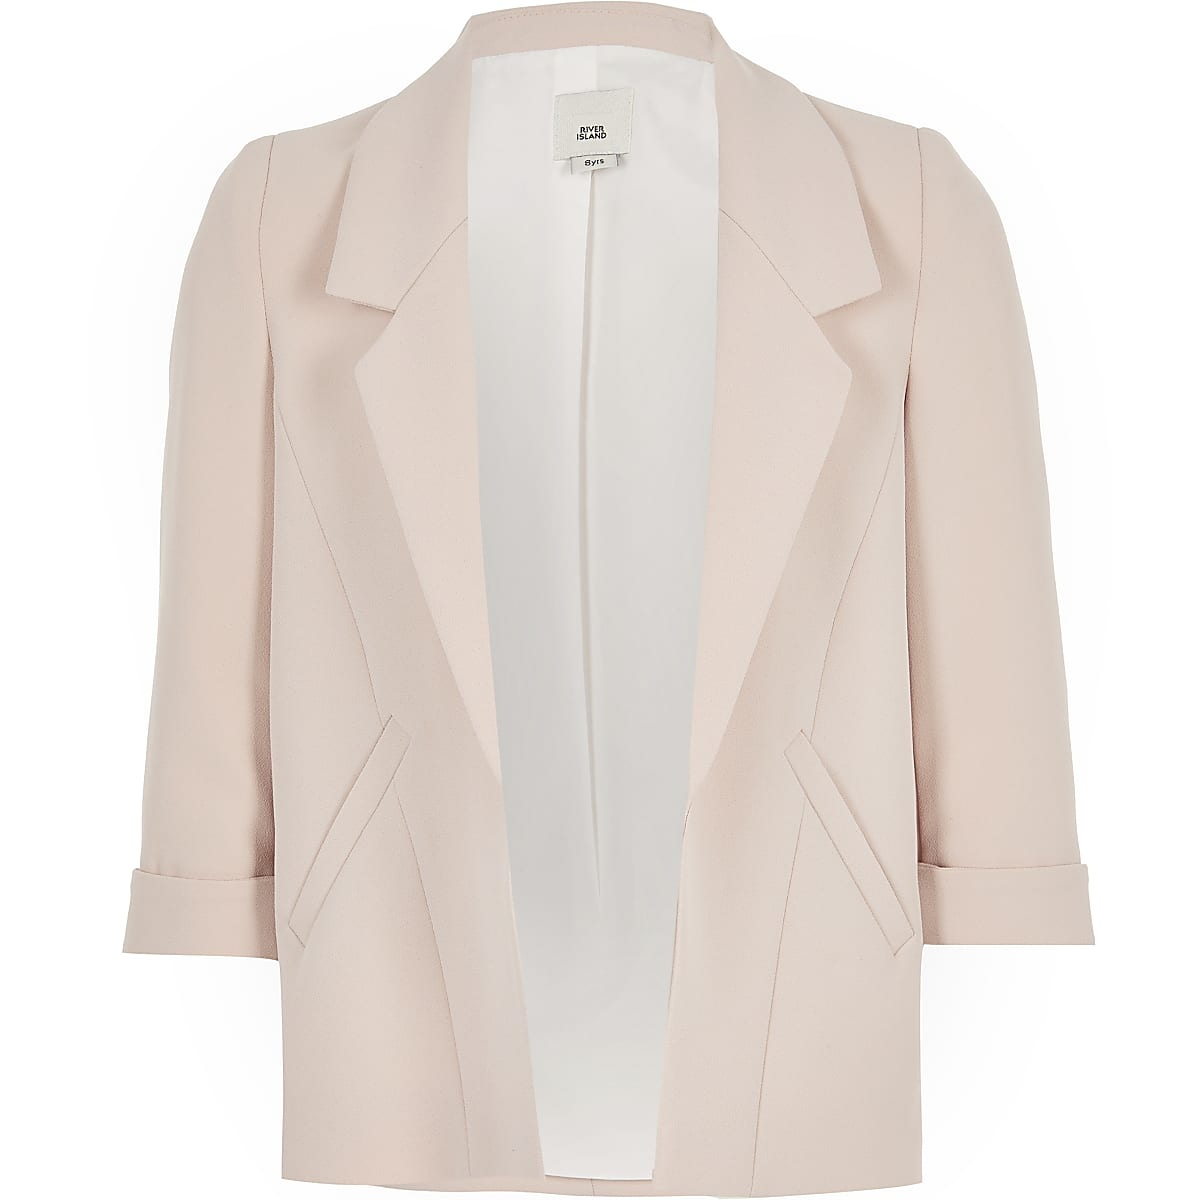 Girls pink blazer